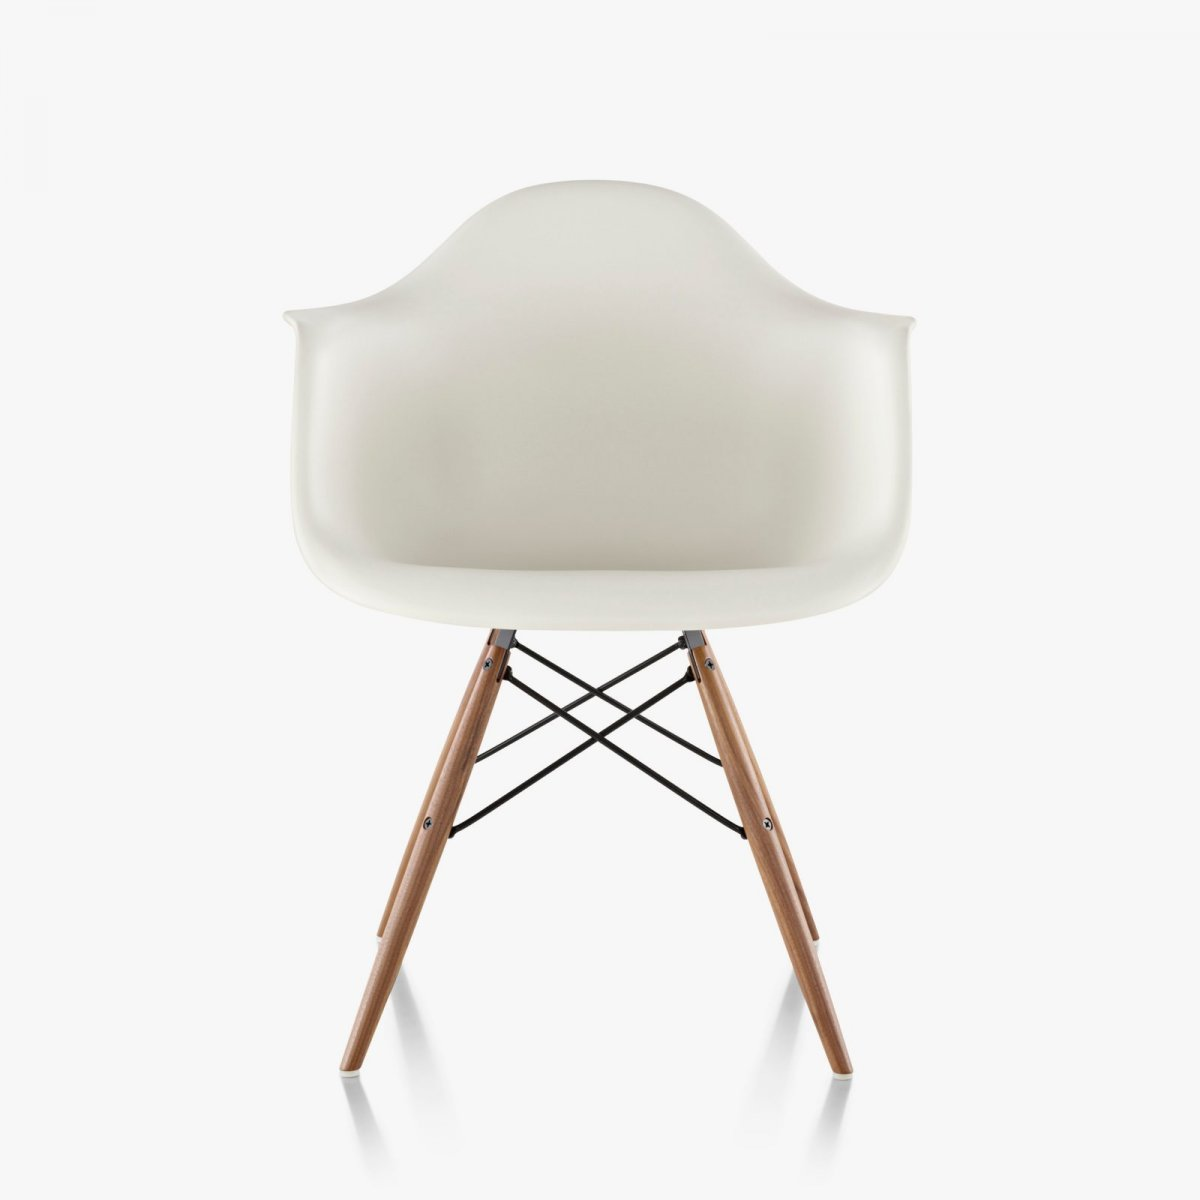 Eames Molded Plastic Armchair Dowel Base, white.